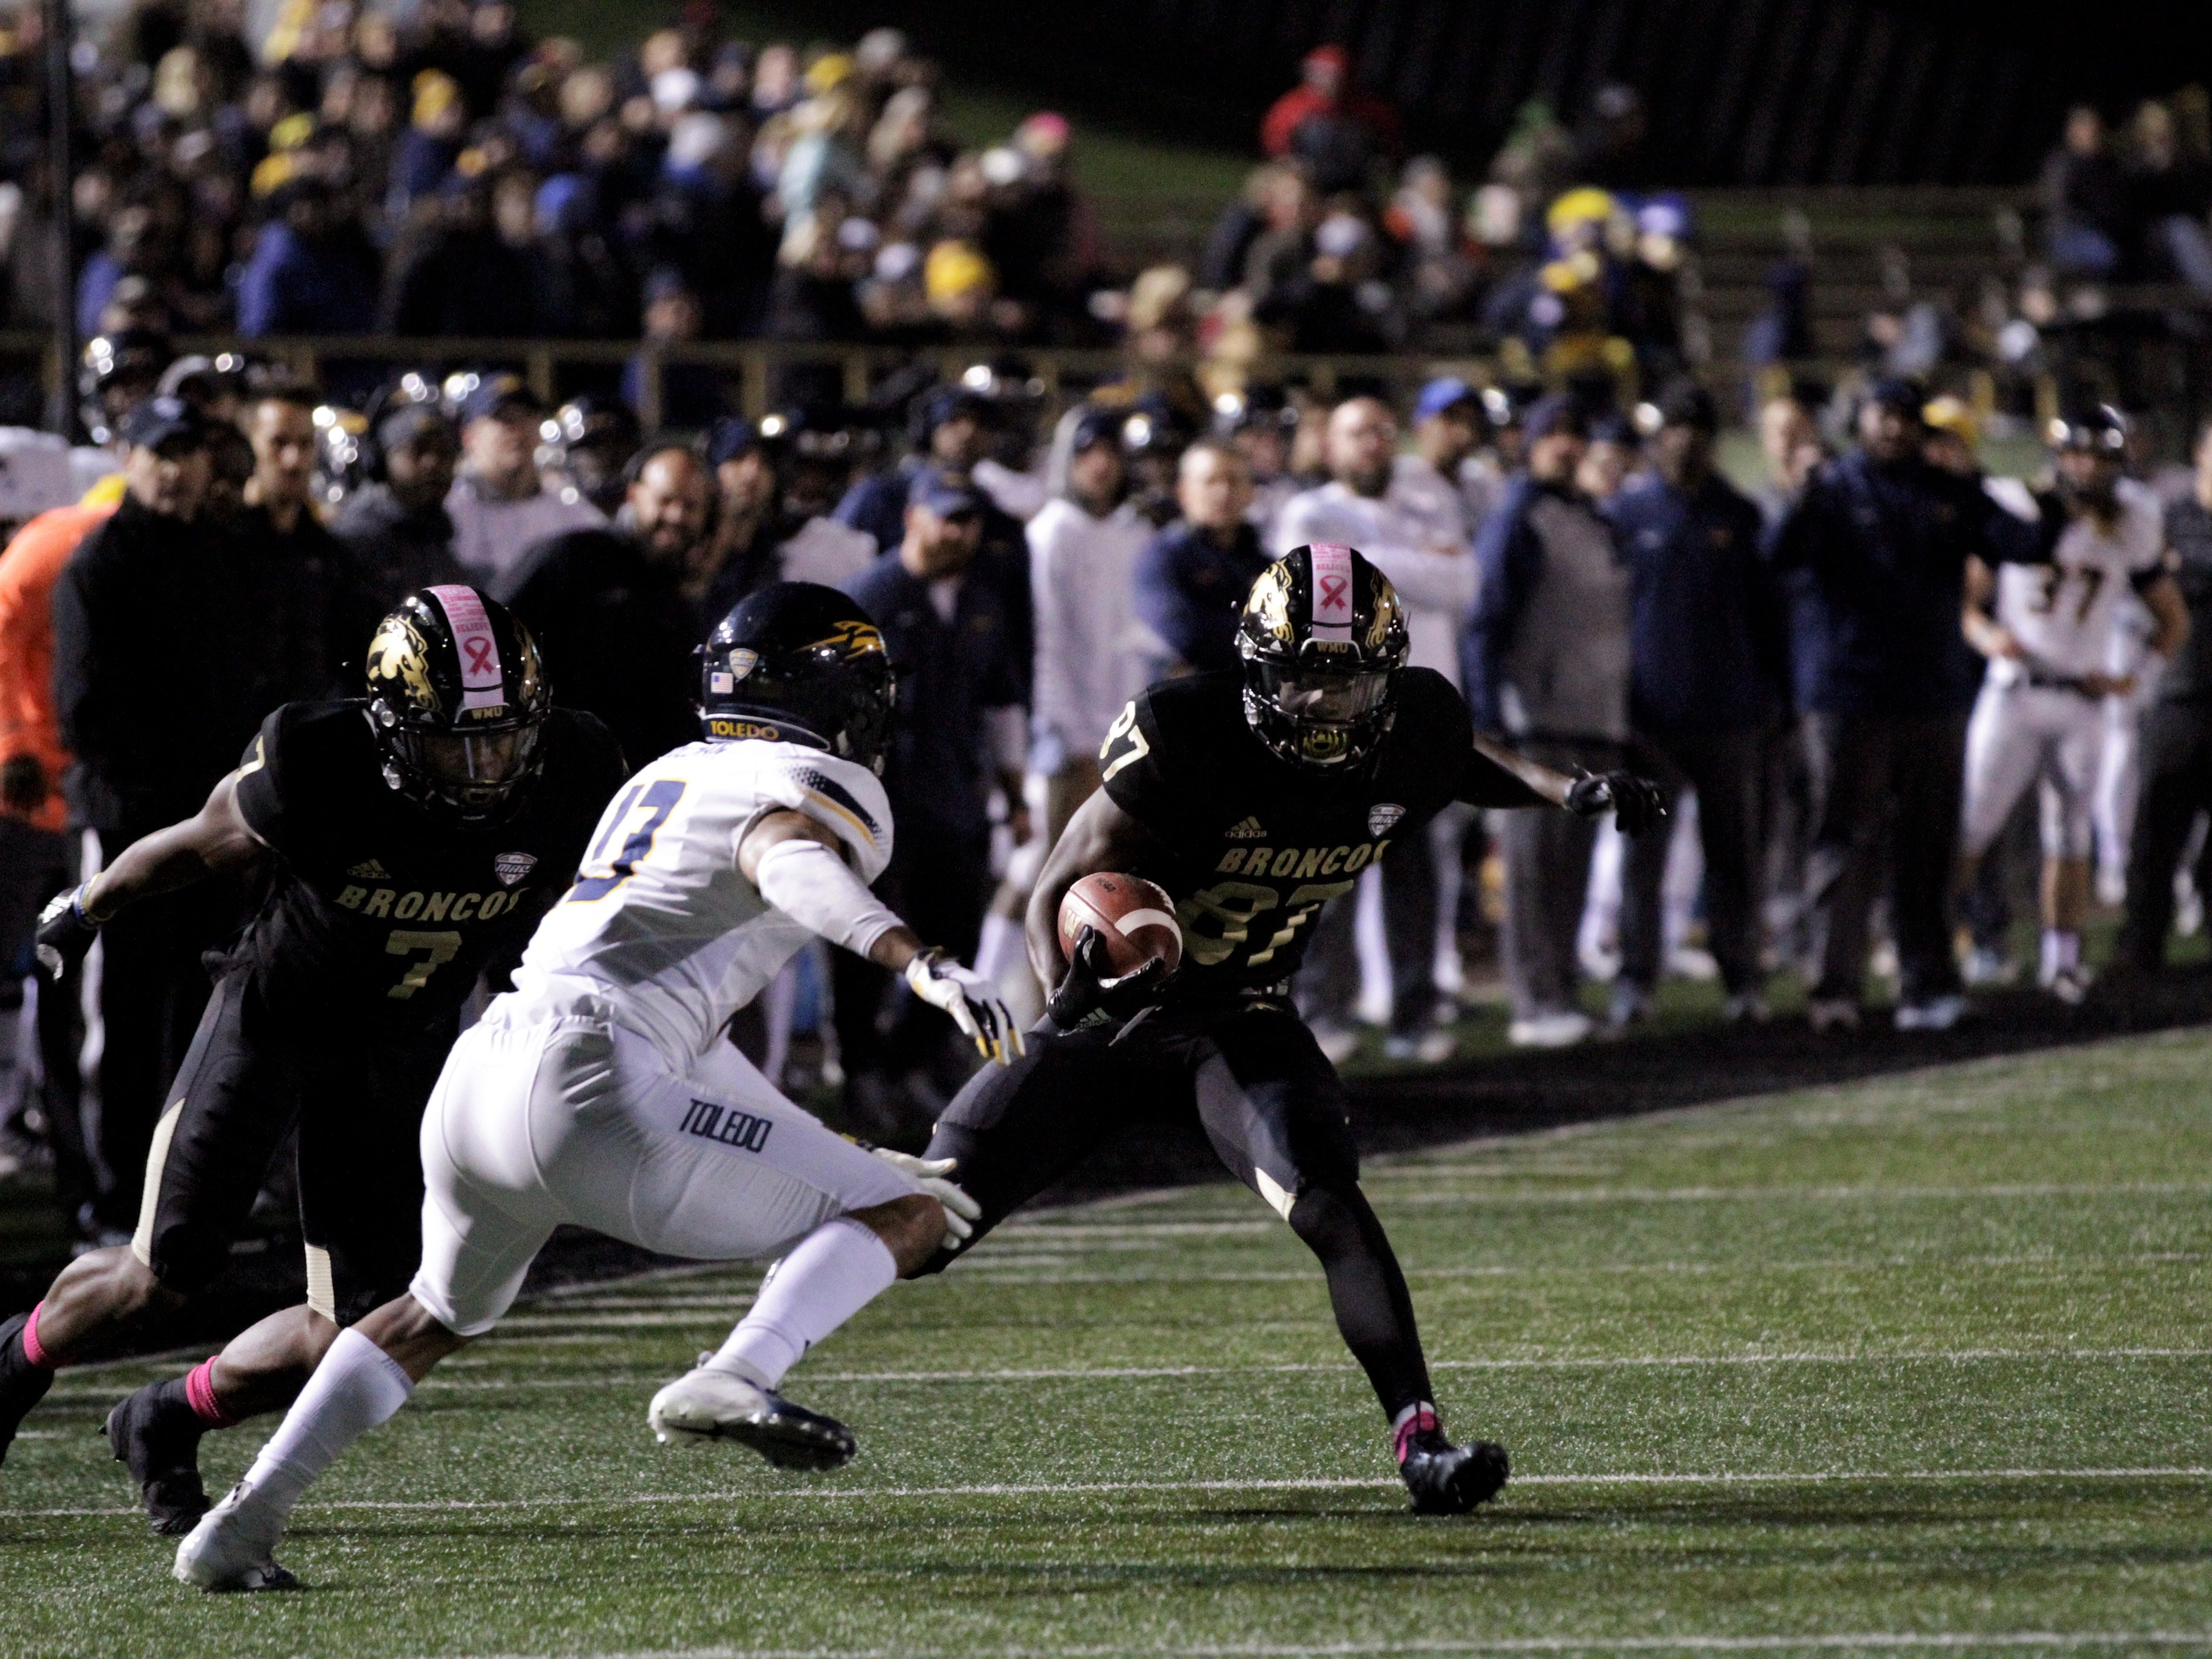 Western Michigan wide receiver Jayden Reed (87) cuts inside Toledo safety Ka'Dar Hollman (13) on his way to a 25-yard touchdown at Waldo Stadium in Kalamazoo on Thursday, October 25, 2018.